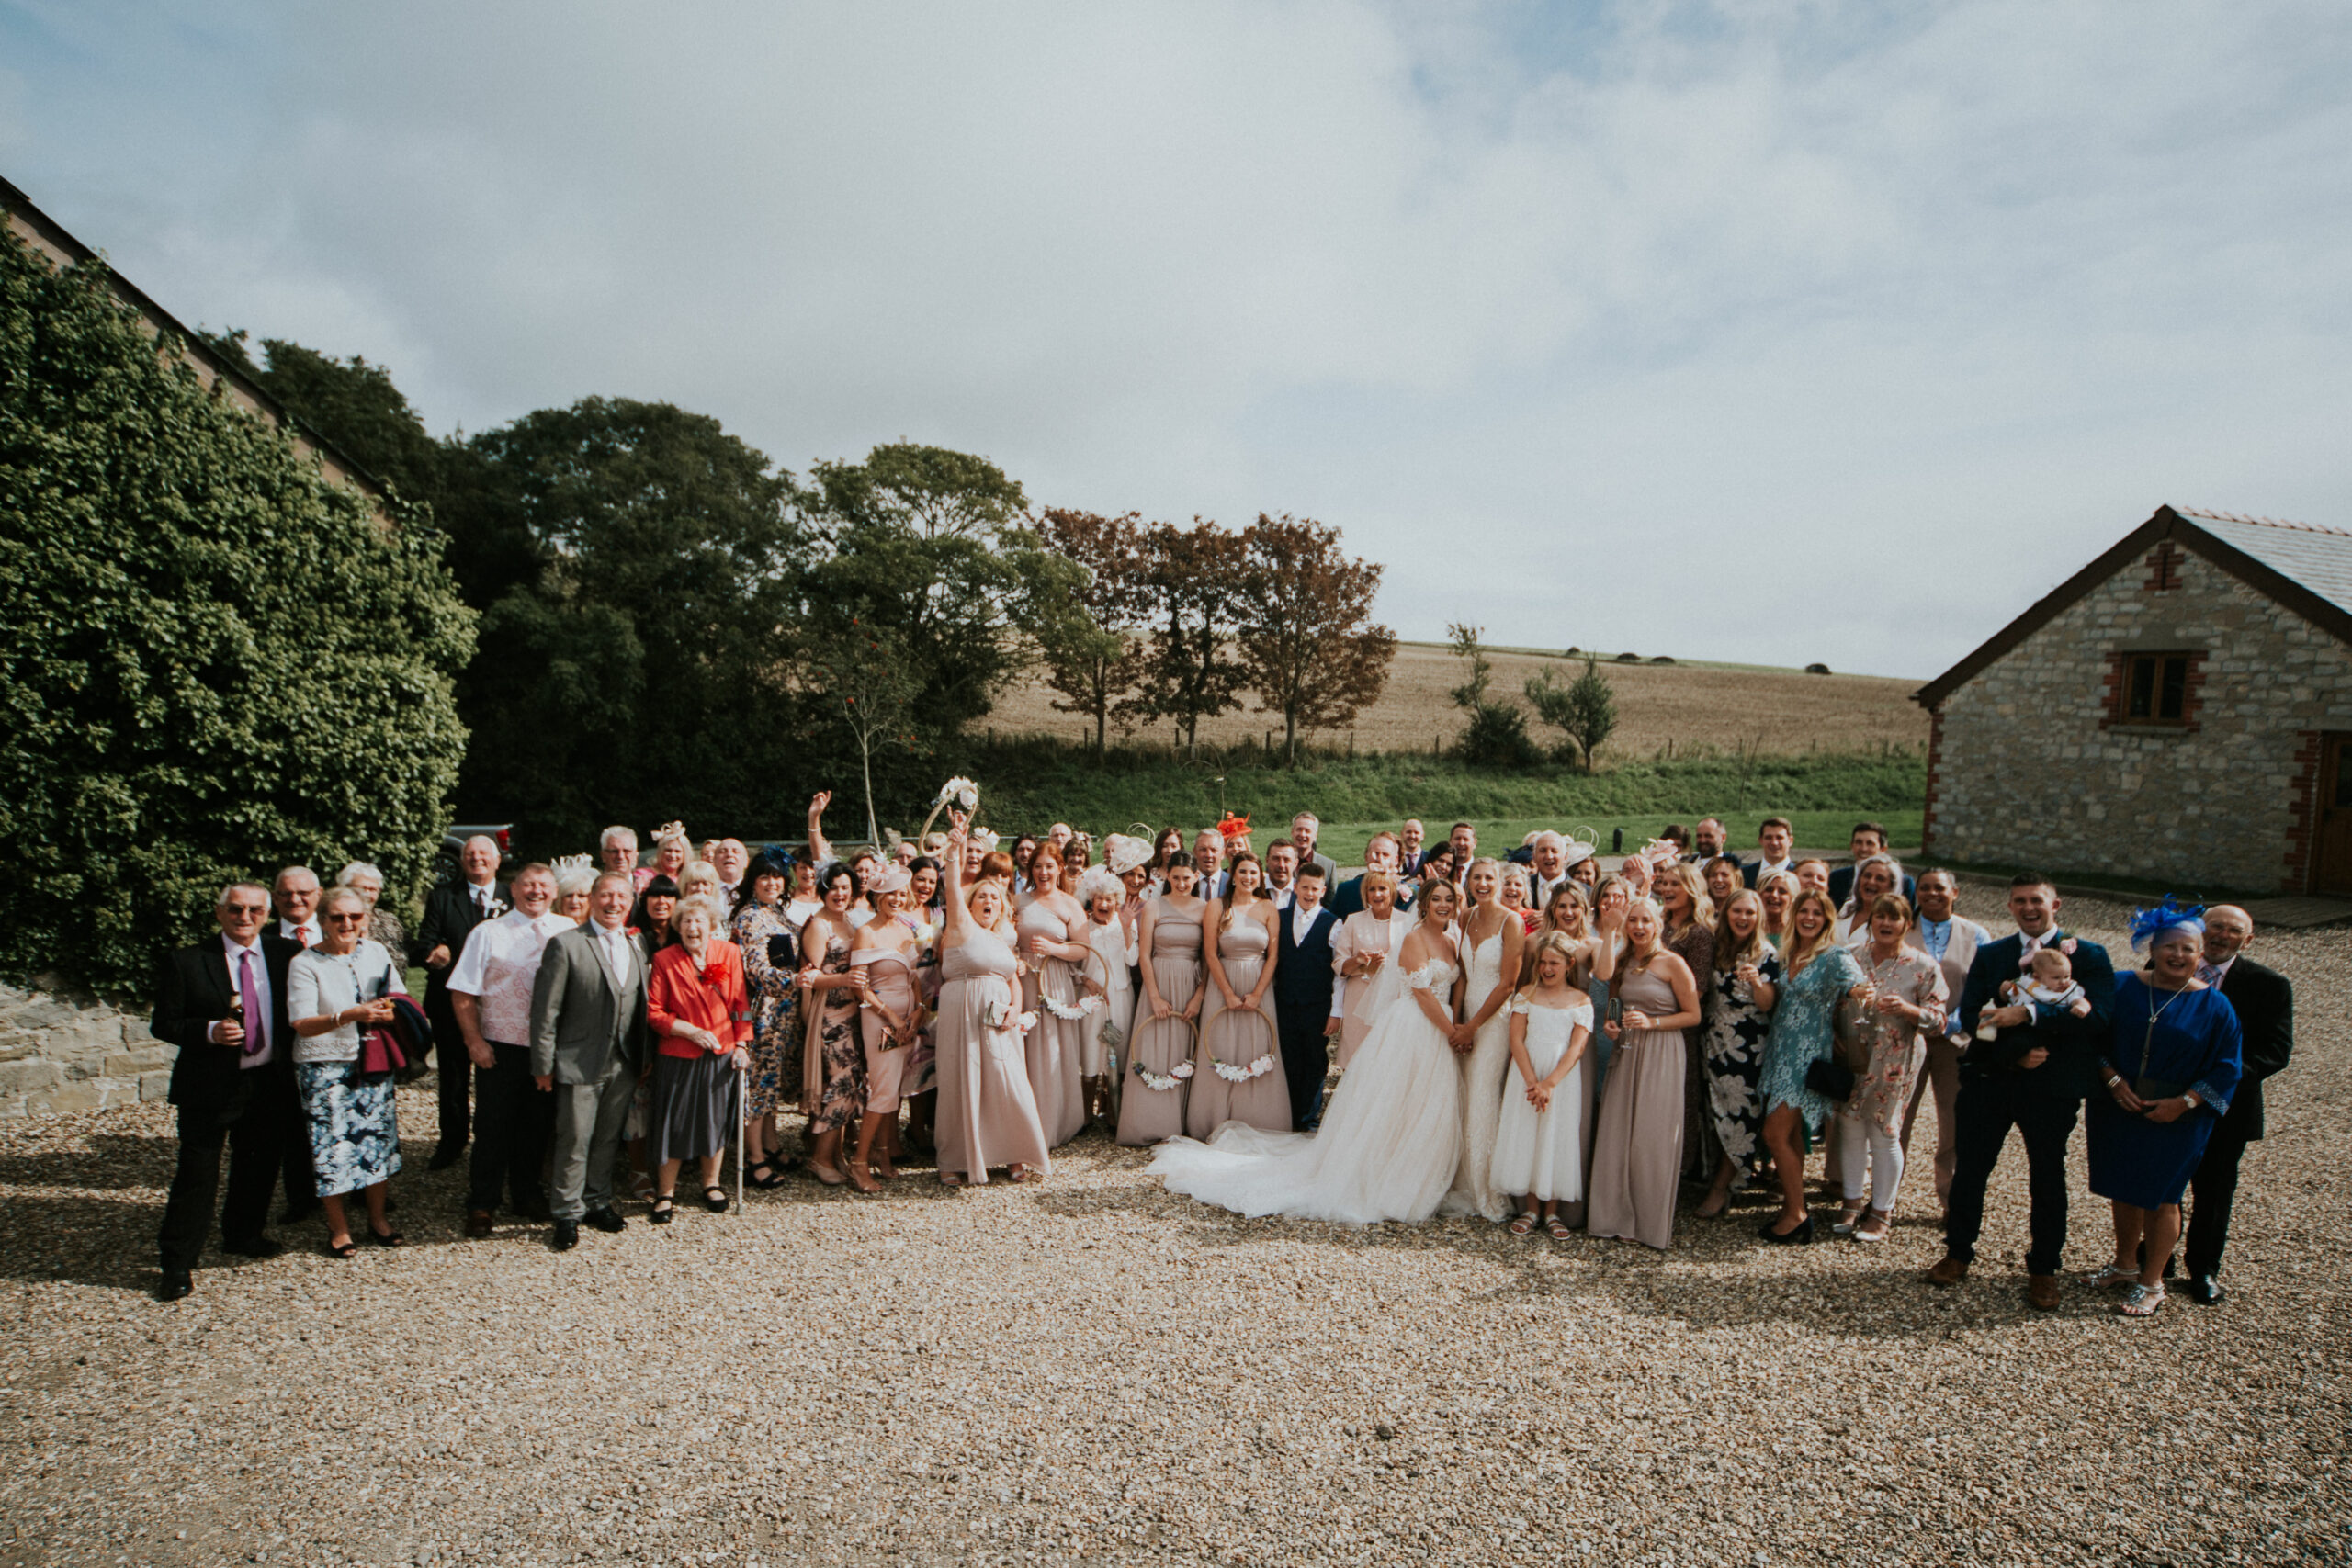 group shot of the whole wedding party